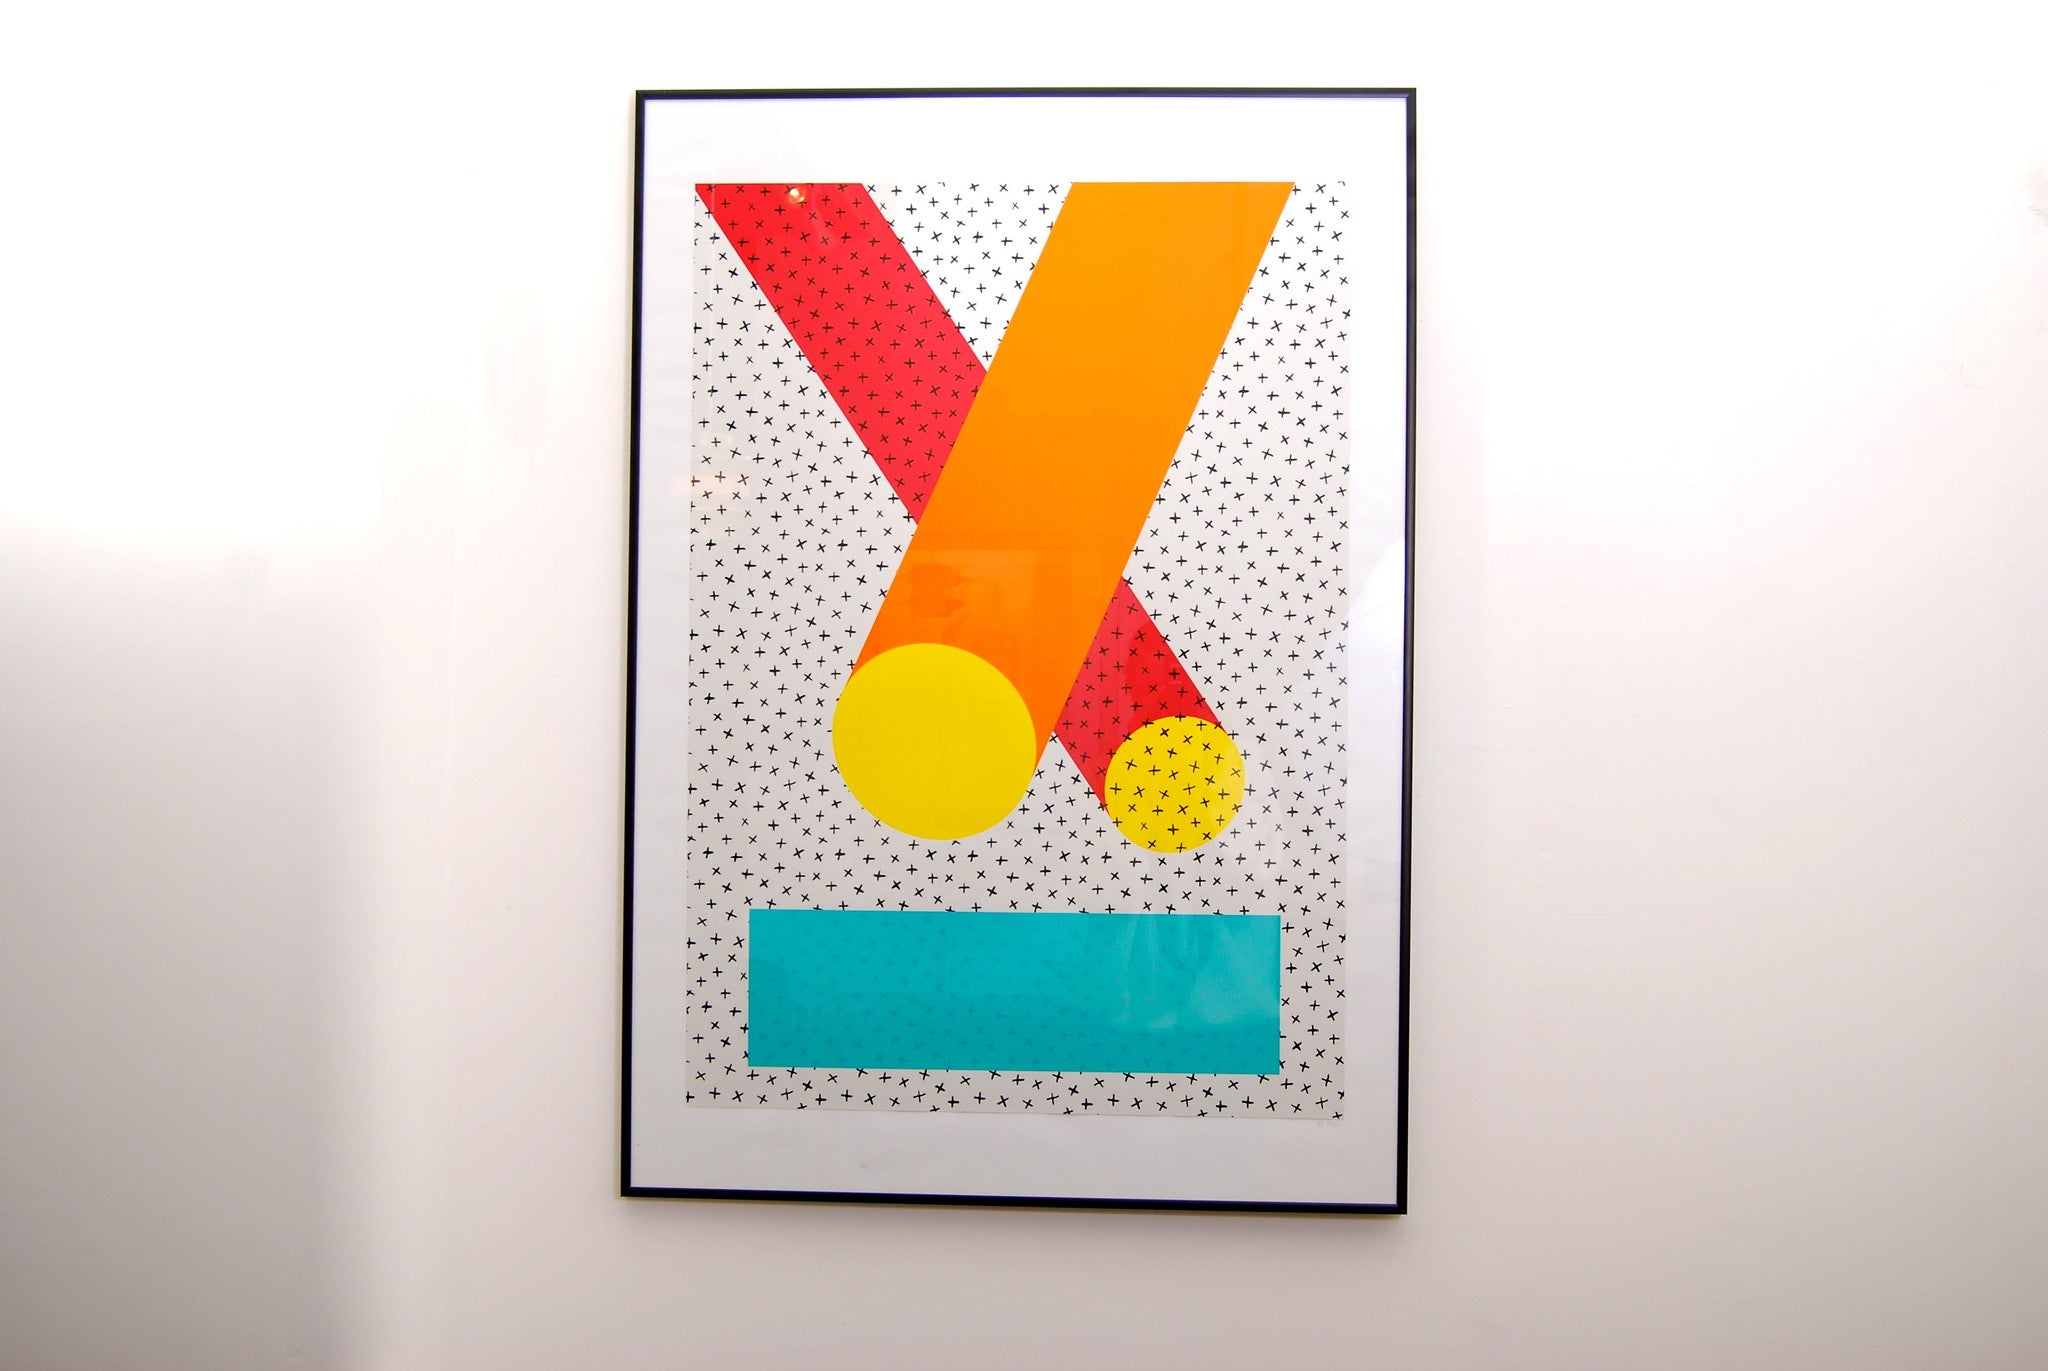 Chase & Sorensen Screen print by Saskia Pomeroy